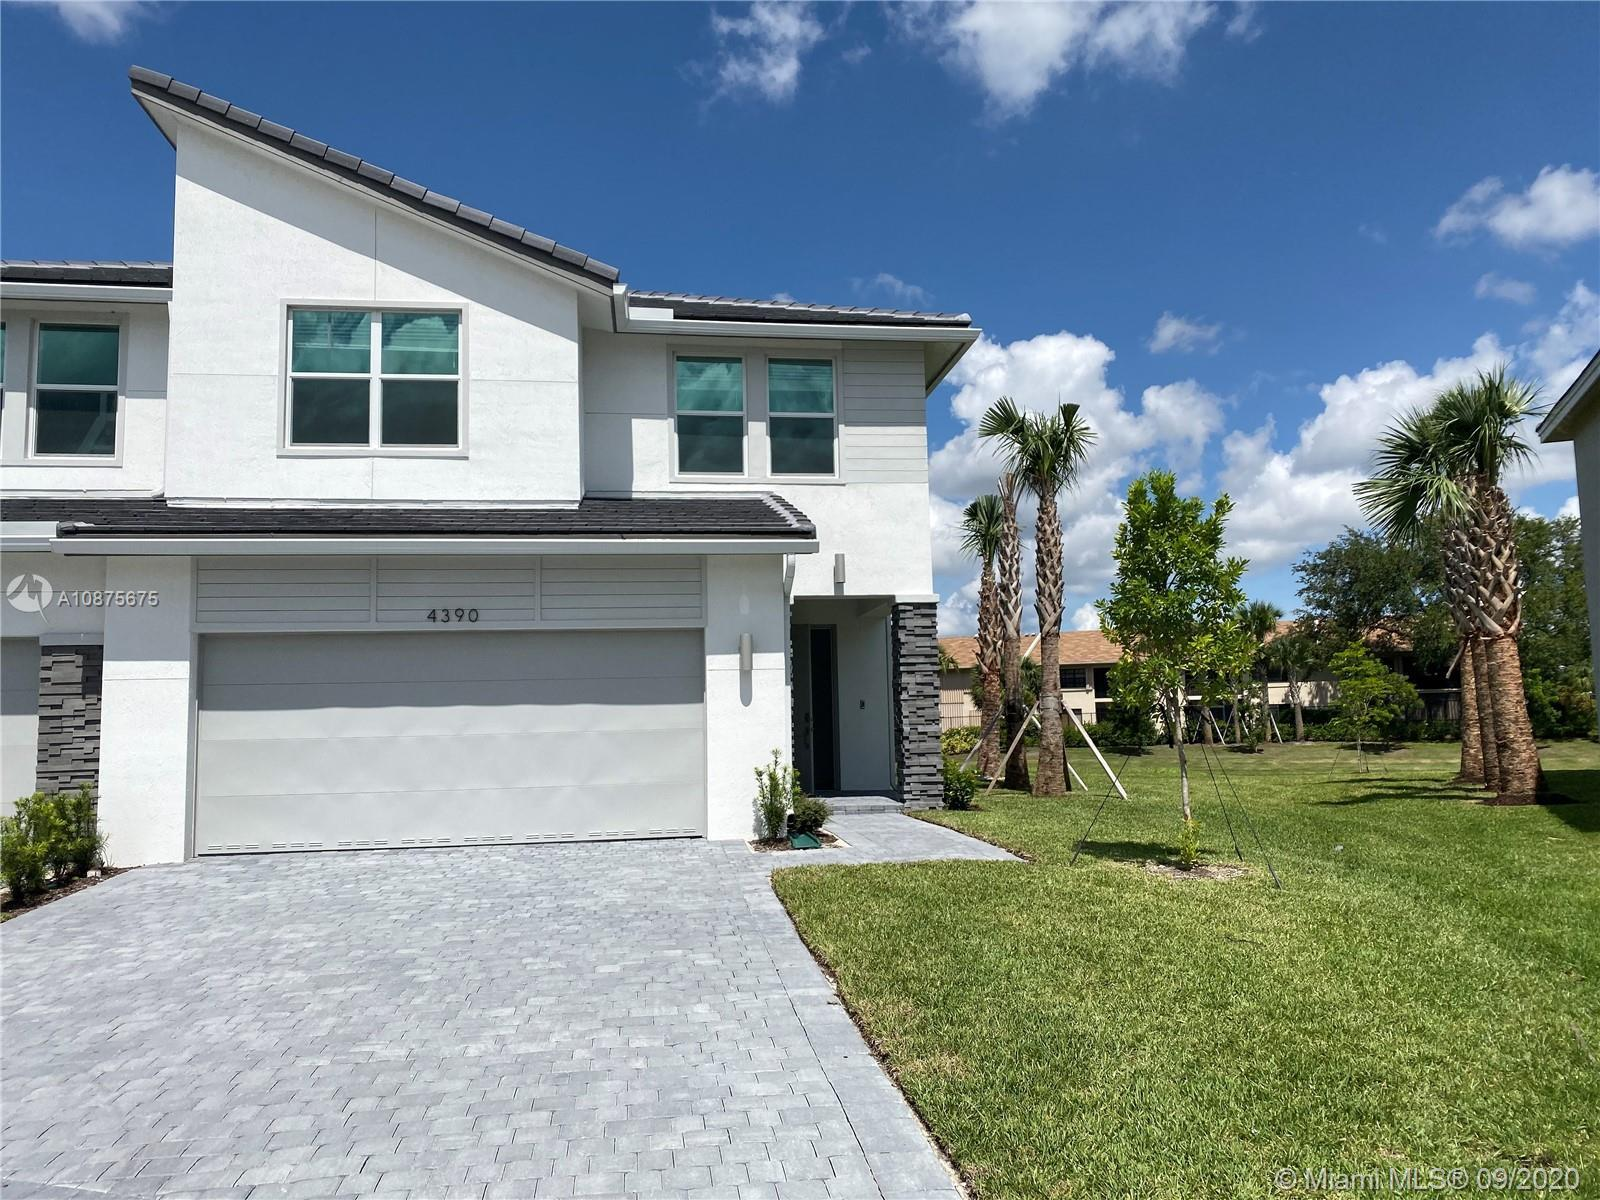 NEW CONSTRUCTION   The two-story Bussola floor plan features 3 bedrooms and 2.5 bathrooms. It begin